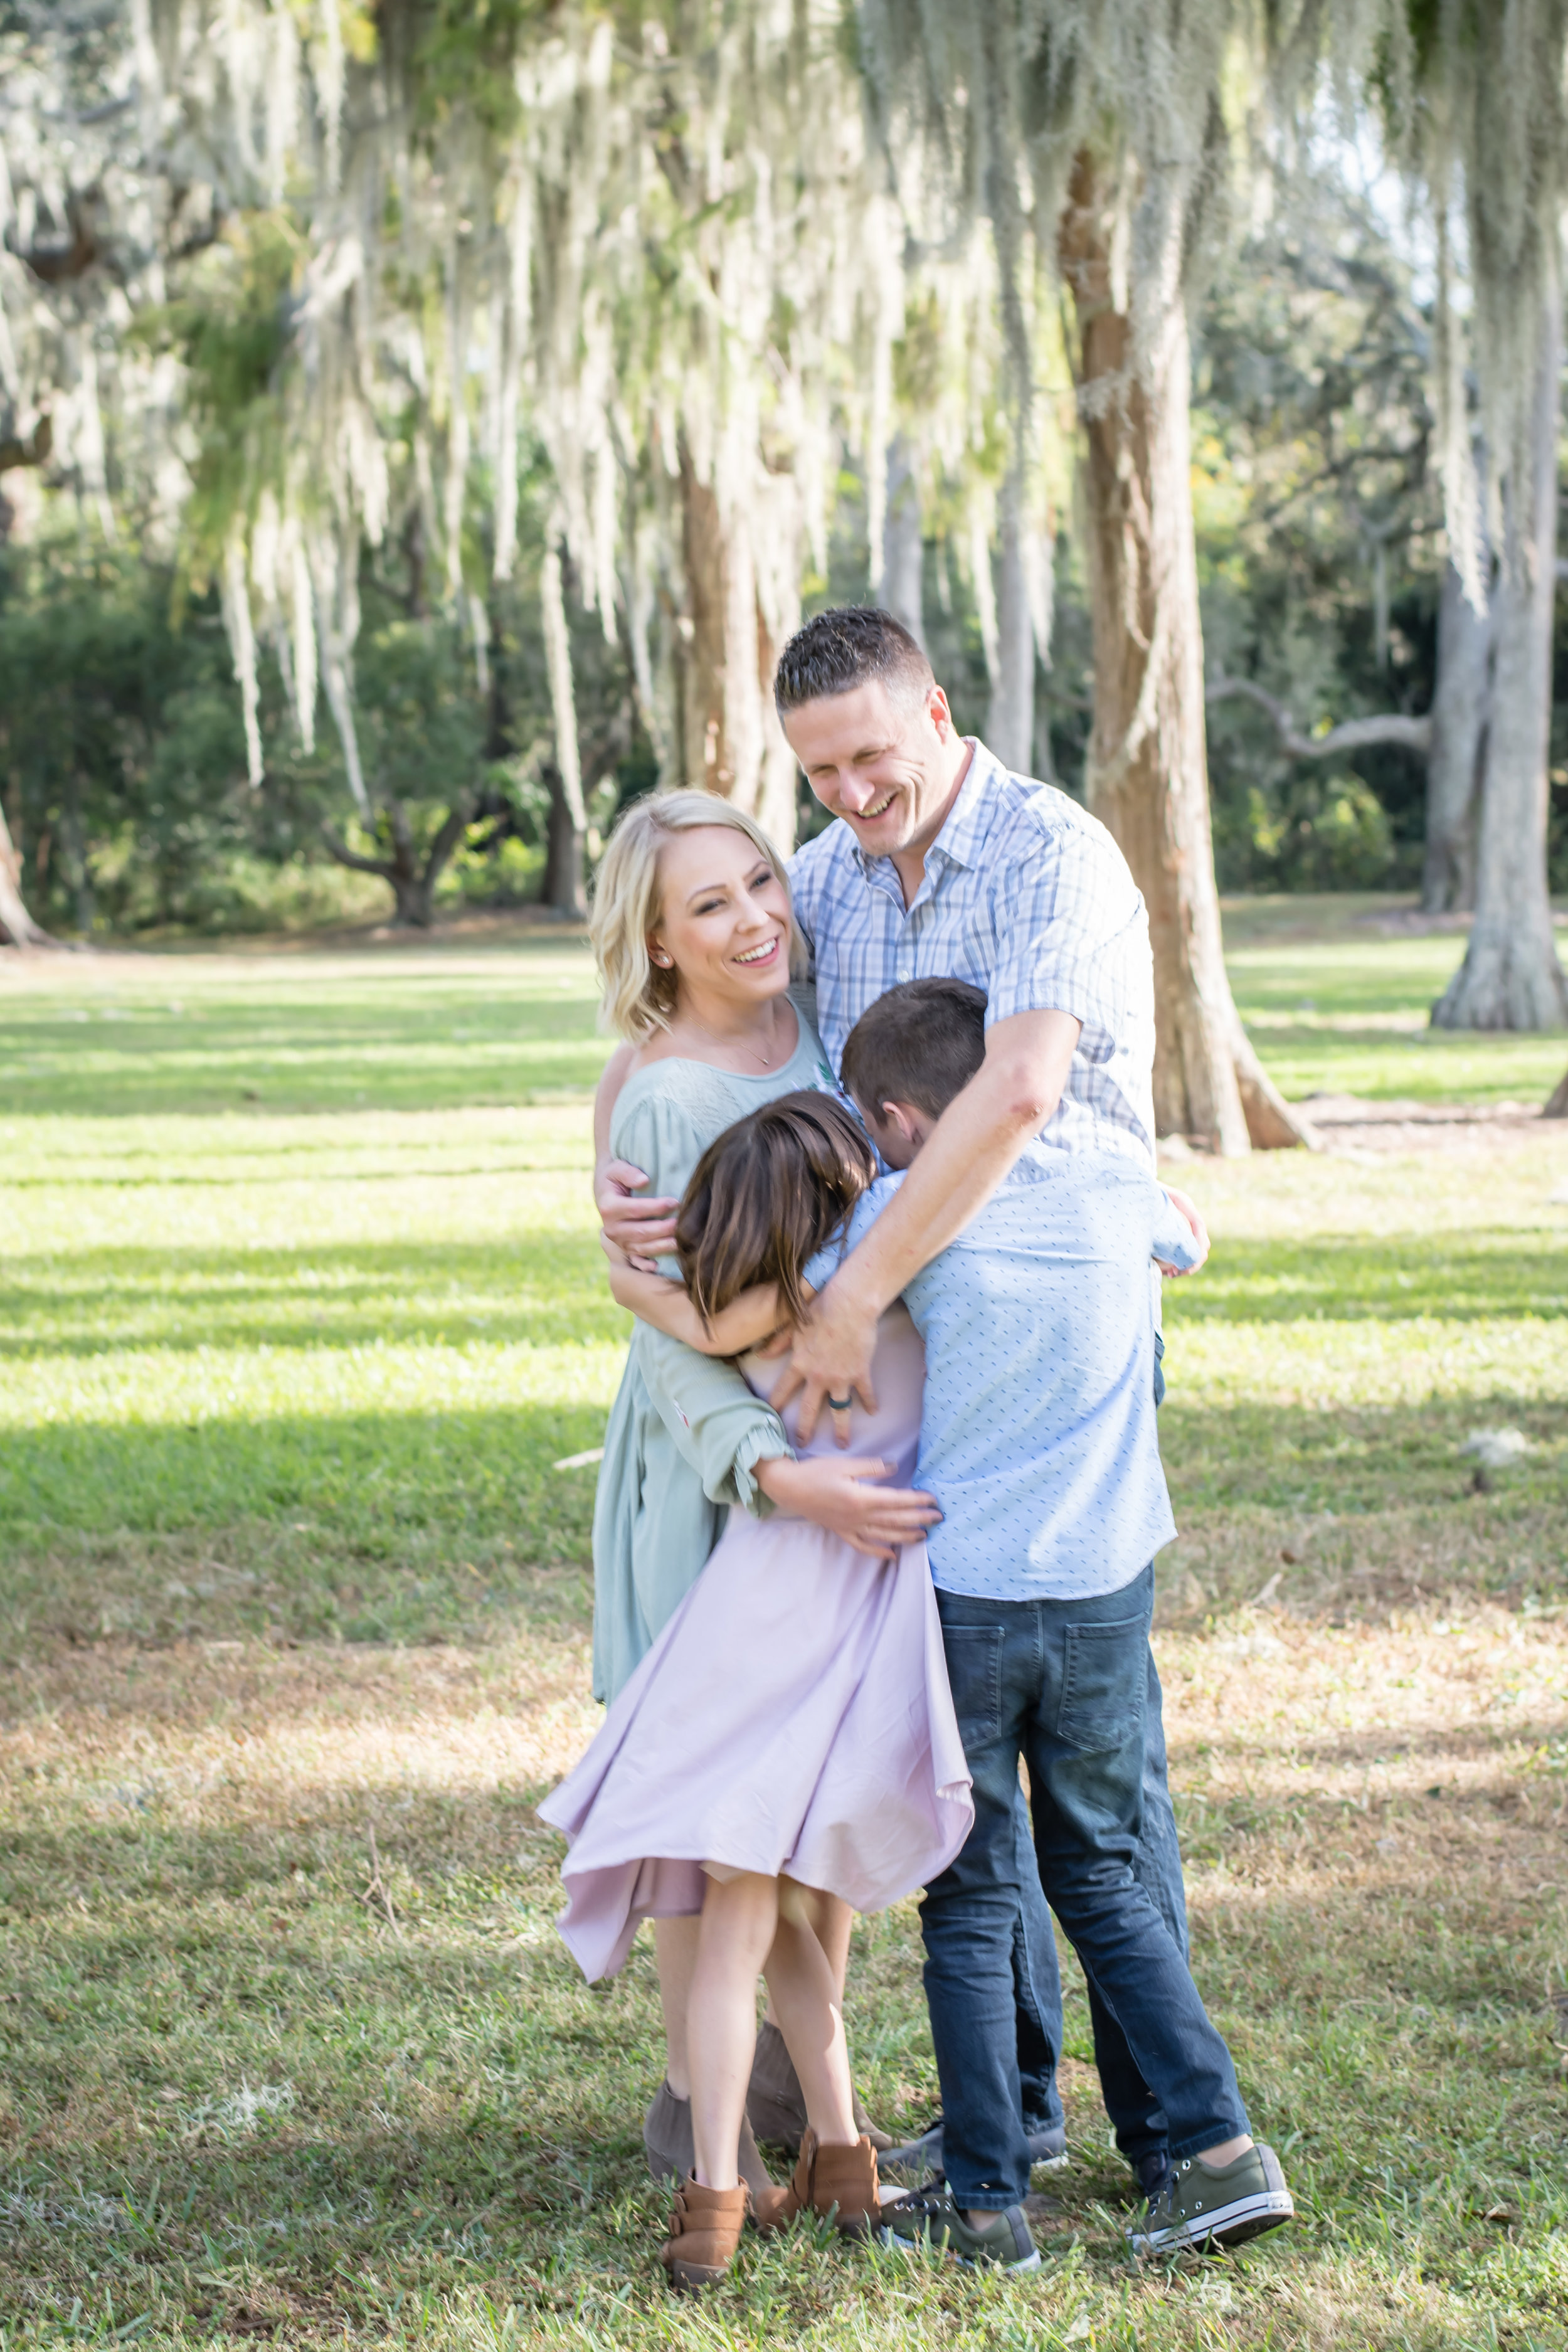 cypress-grove-park-family-session-orlando-photographer-yanitza-ninett-7.jpg